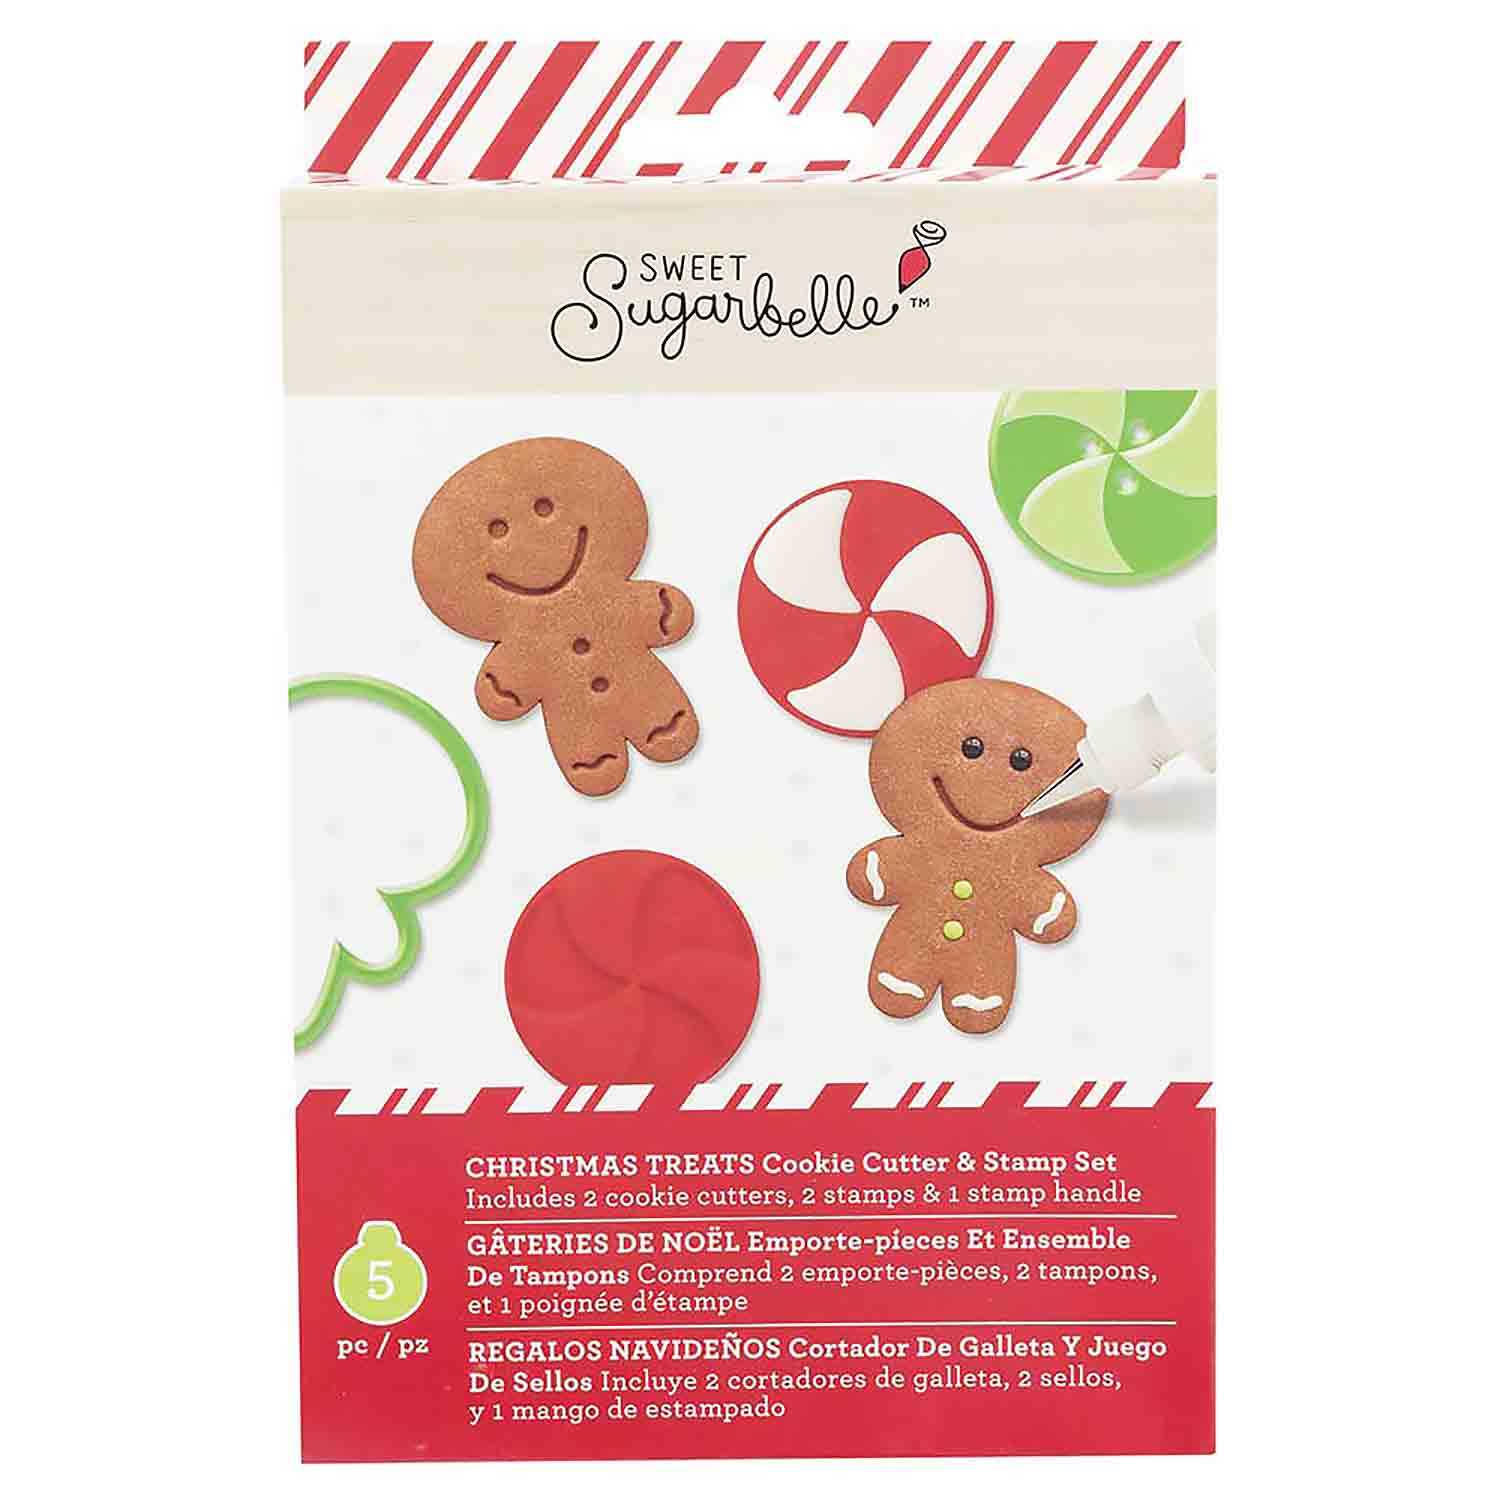 Christmas Treats Cookie Cutter and Stamp Set by Sweet Sugarbelle